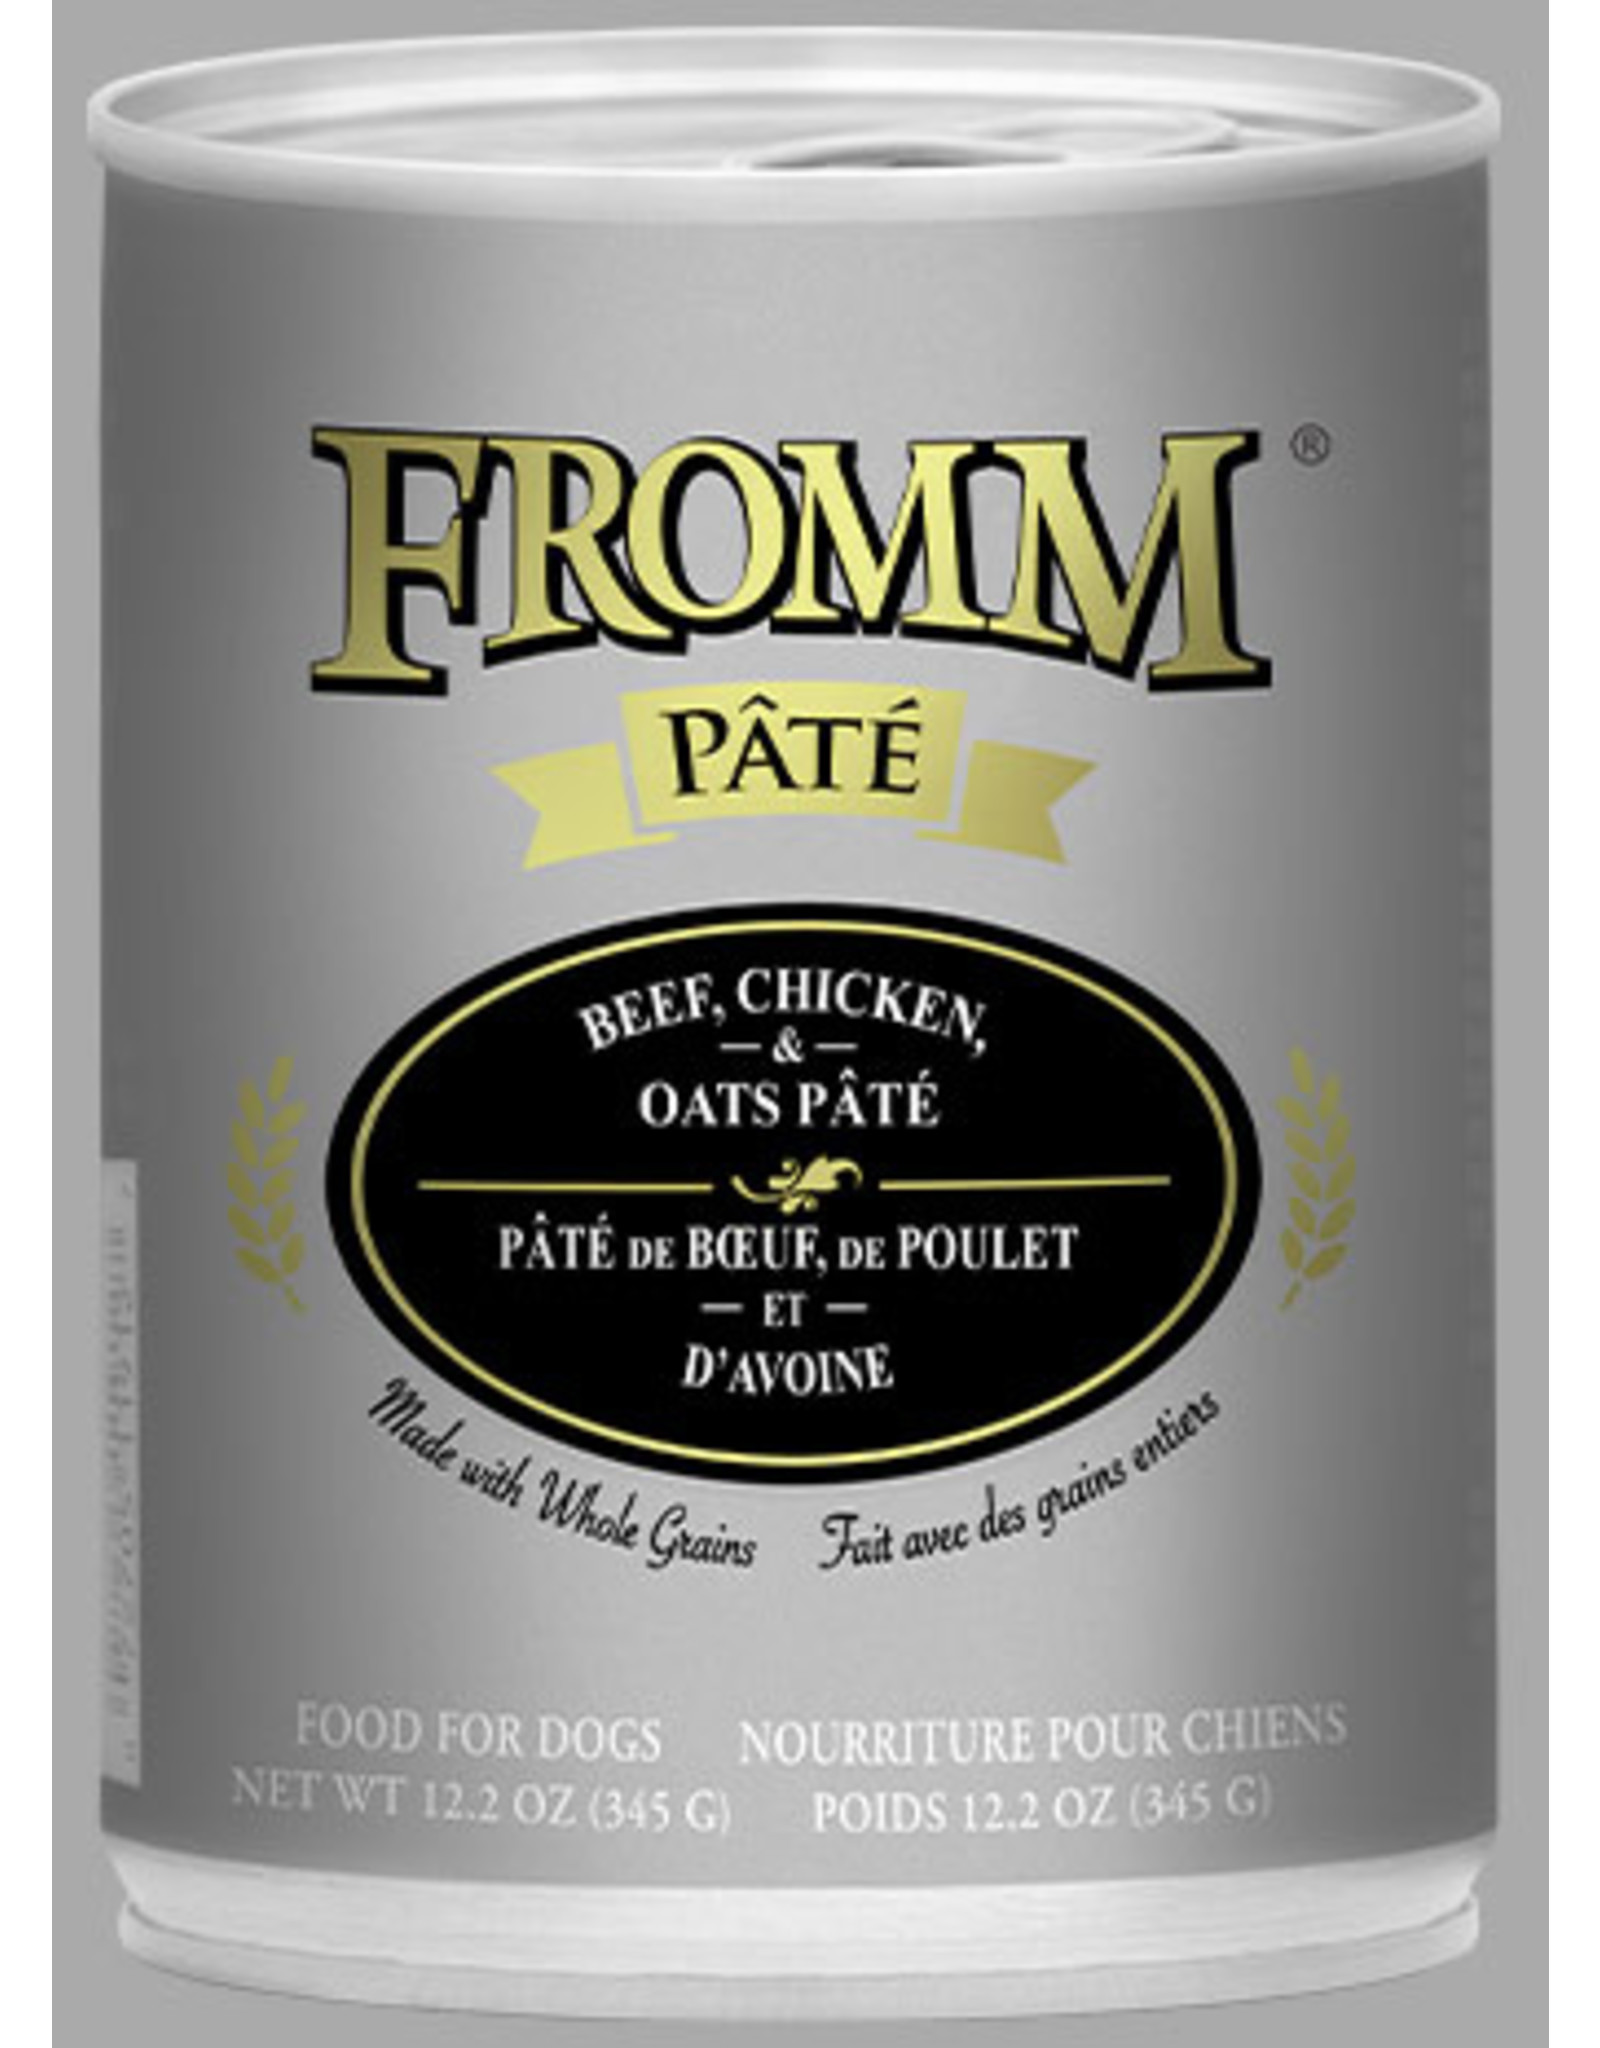 Fromm Fromm Wet Dog Food Beef, Chicken, & Oats Pate 12.2oz Can Grain Inclusive